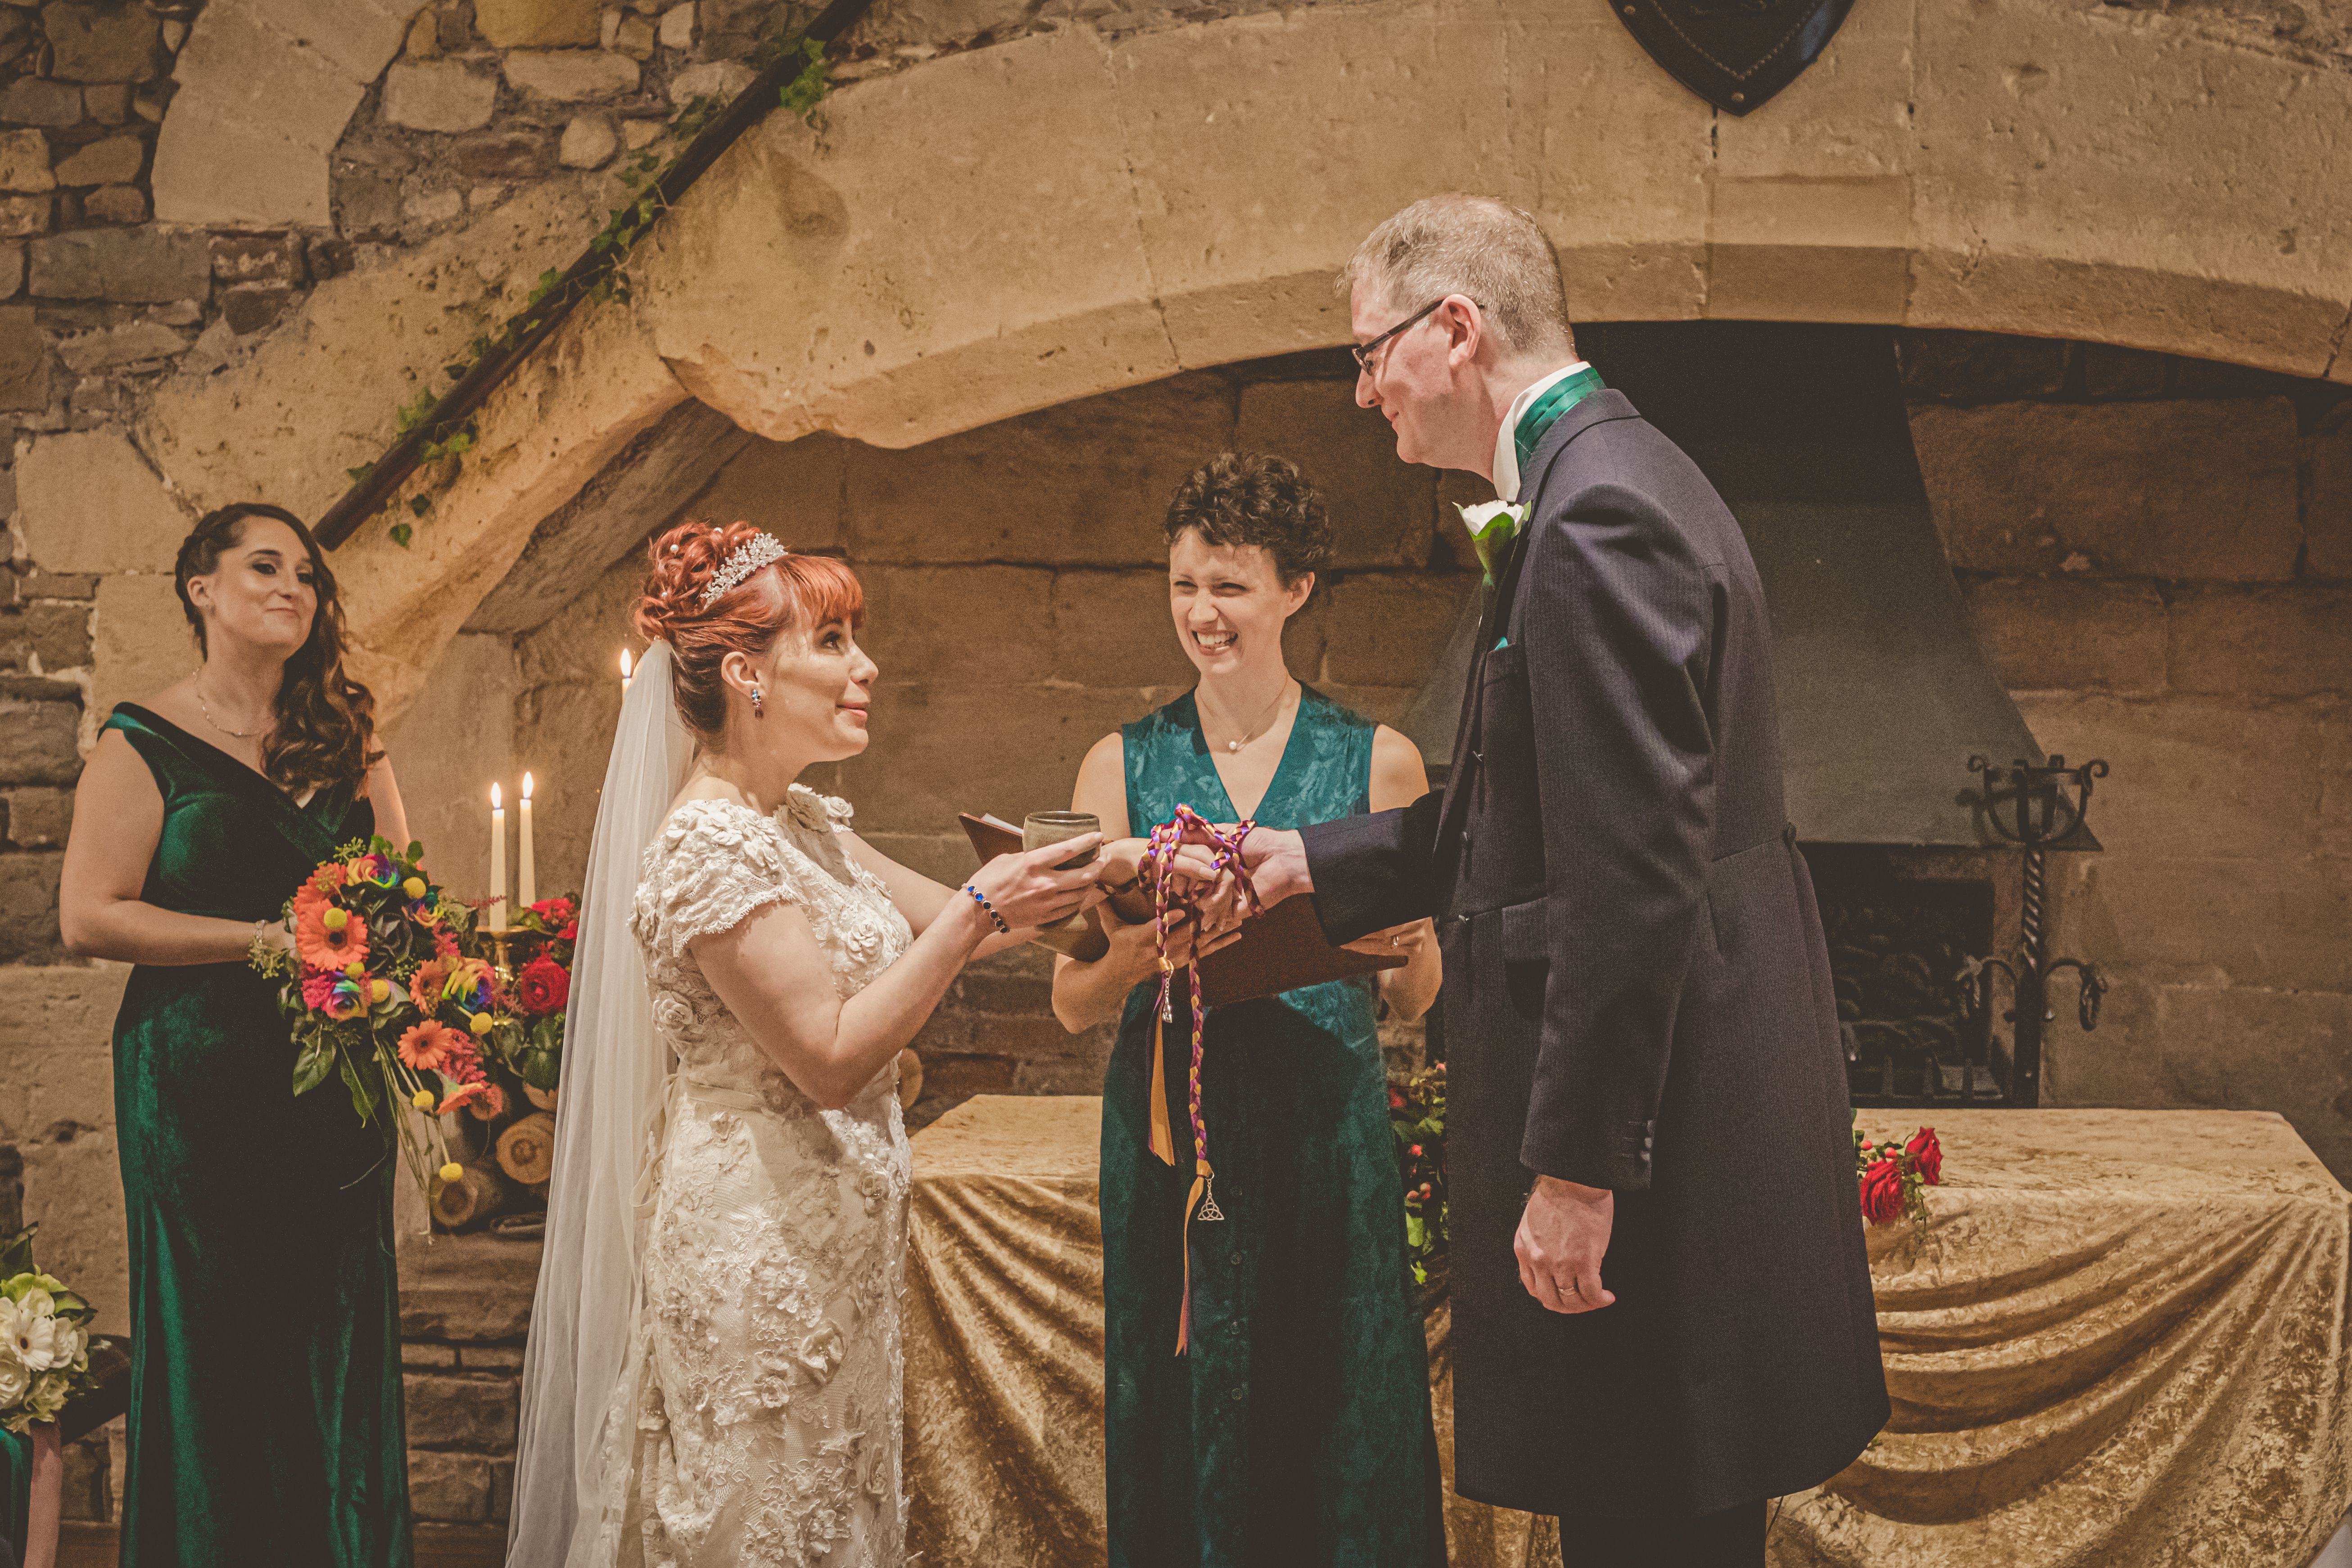 A Bride and Groom stand before a large stone fireplace. The Celebrant Keli Tomlin is standing behind them, laughing at something the bride has said. The couple's hands are tied with a purple and gold handfasting cord.